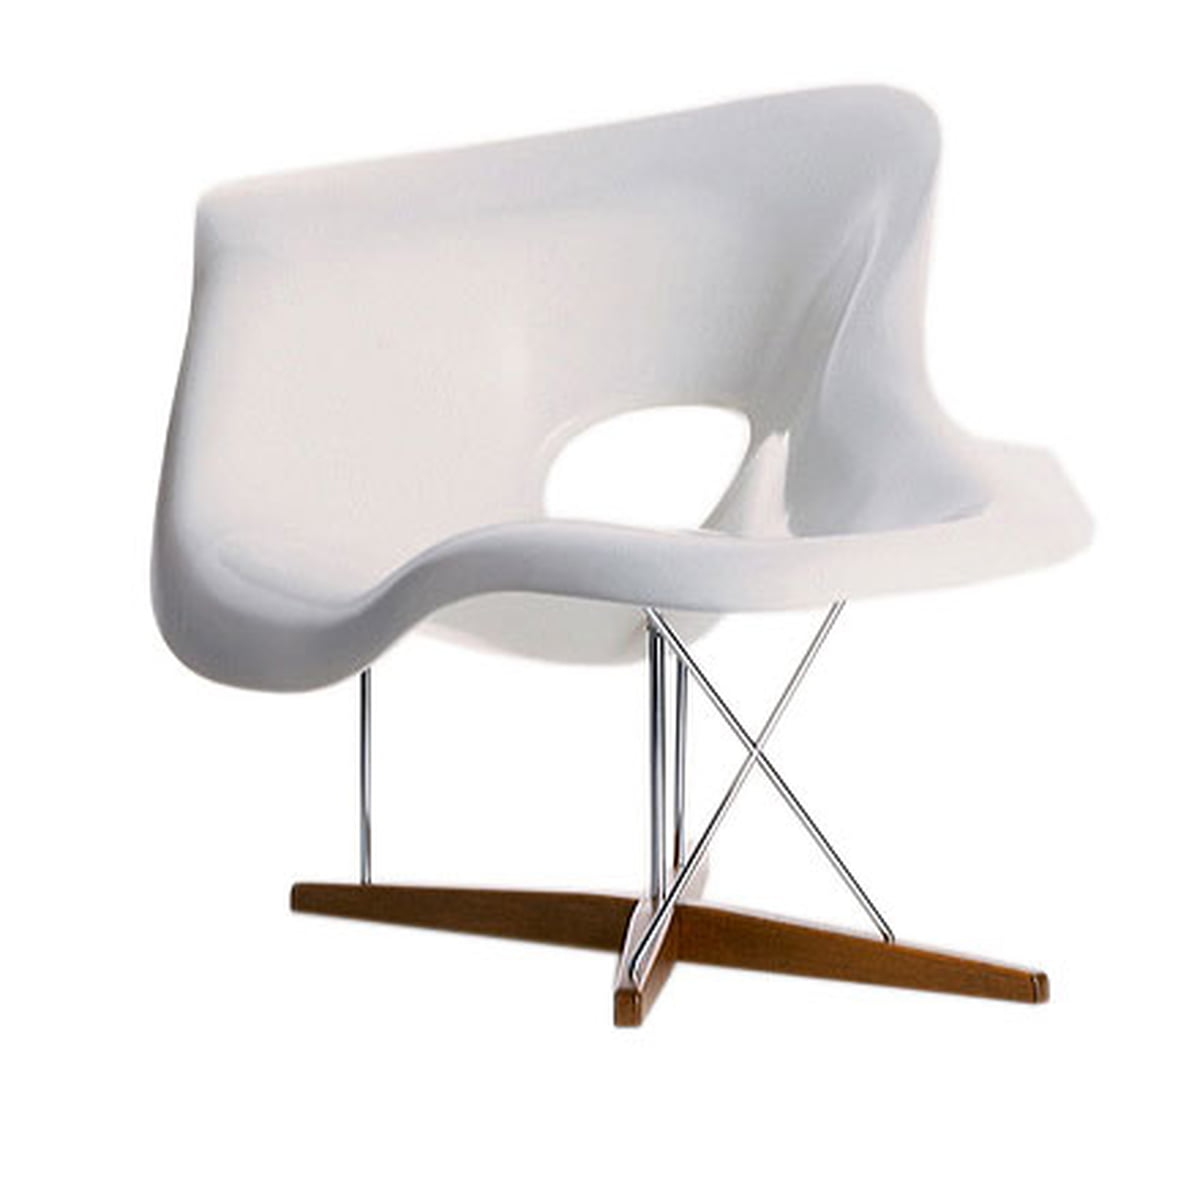 La chaise vitra shop for Eames chaise